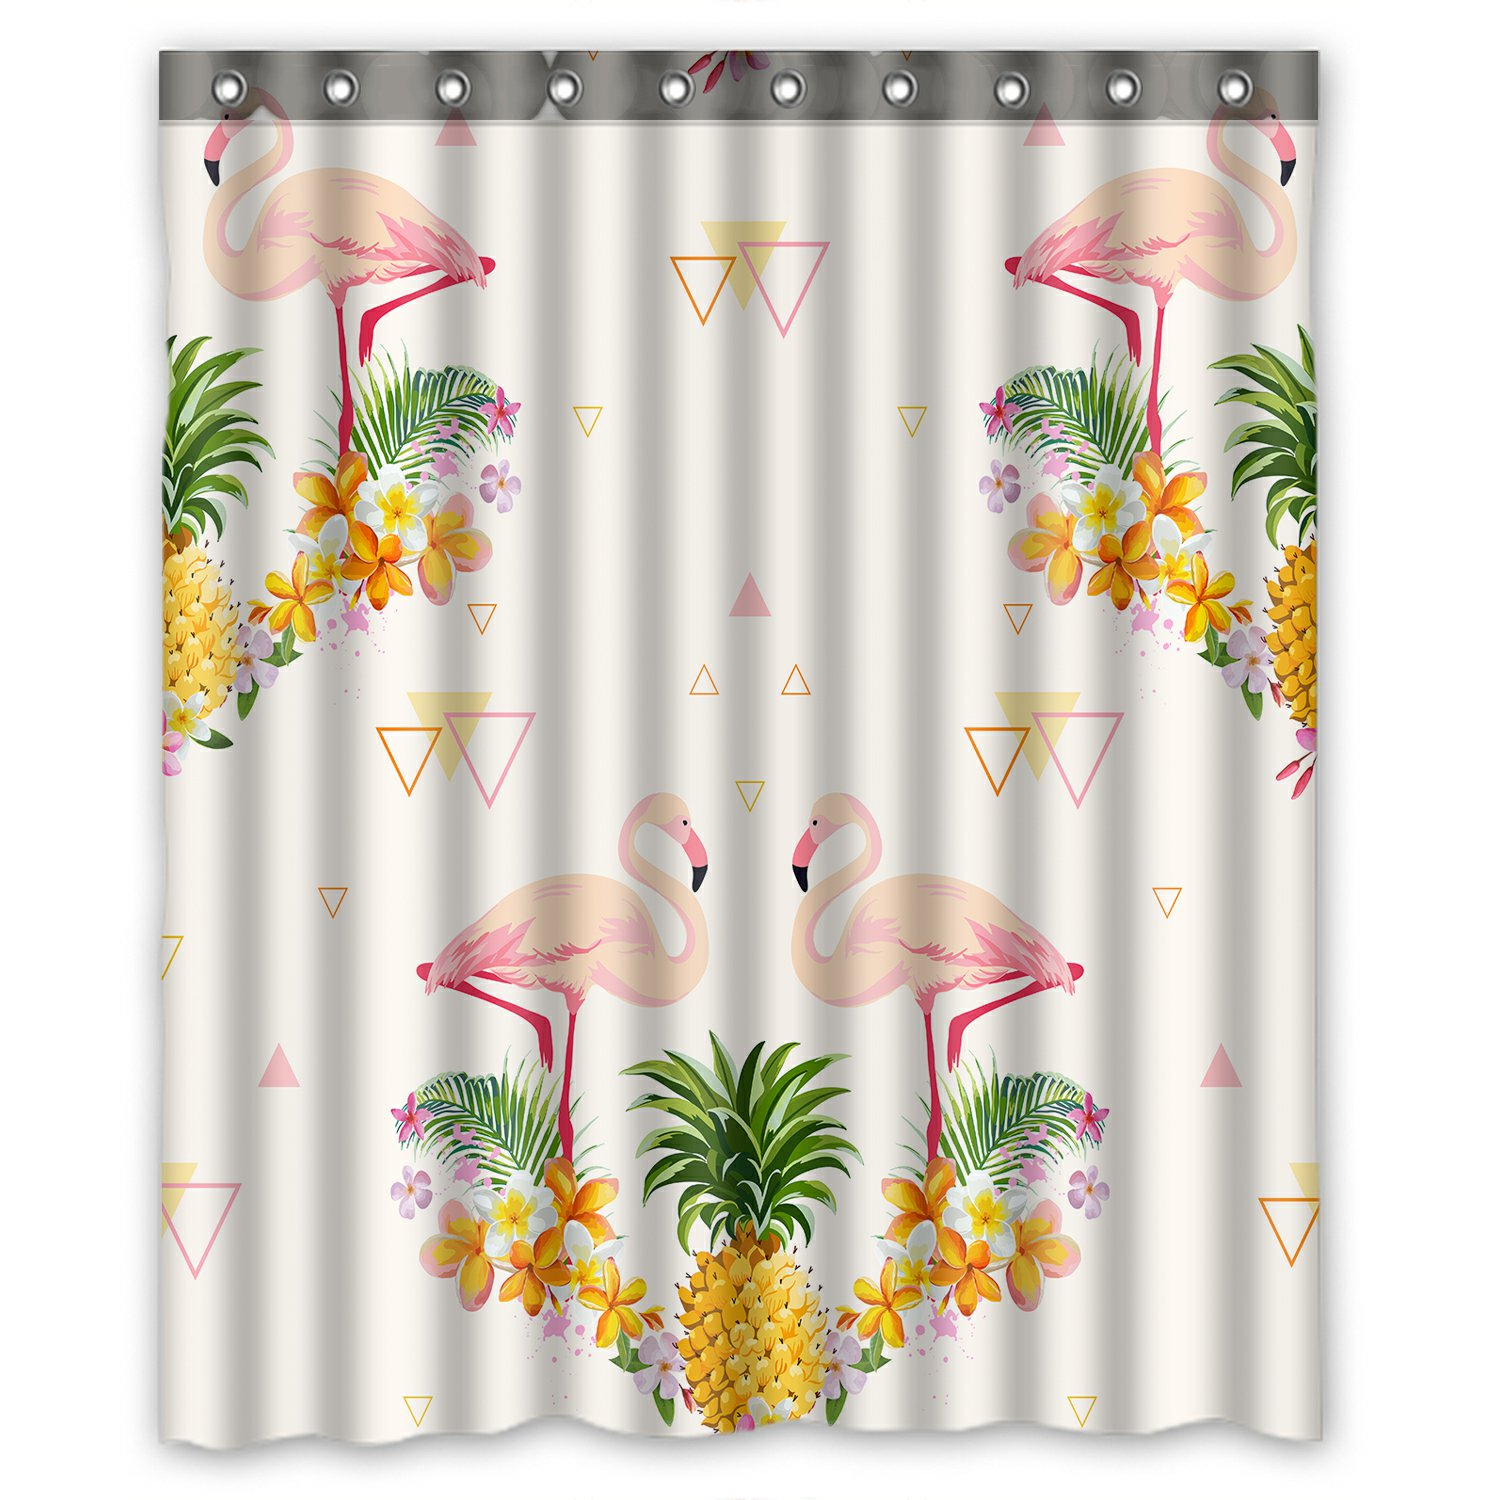 PHFZK Geometric Shower Curtain, Pink Flamingo And